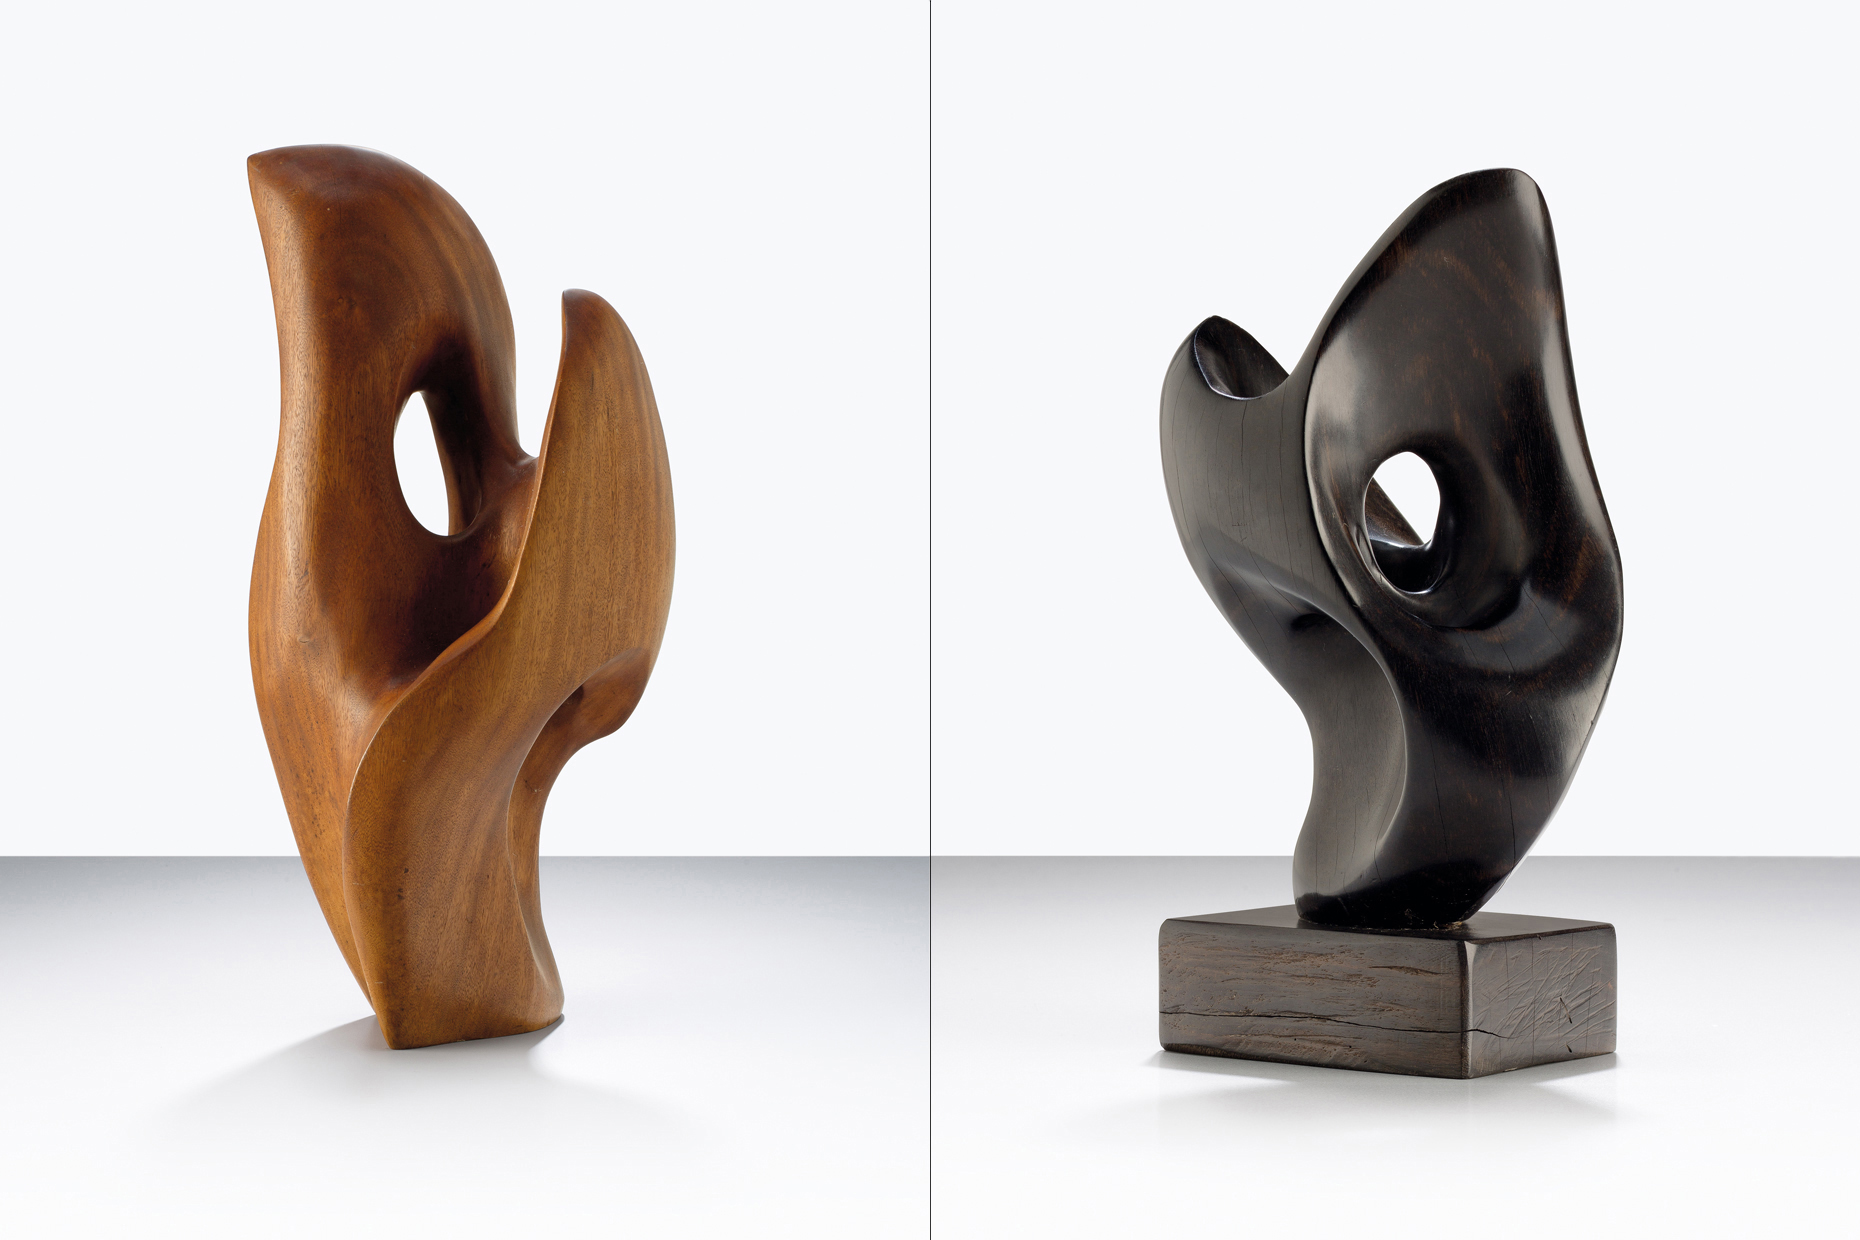 Two wooden sculptures standing on a simple tabletop. Craftsmanship beauty modern forms